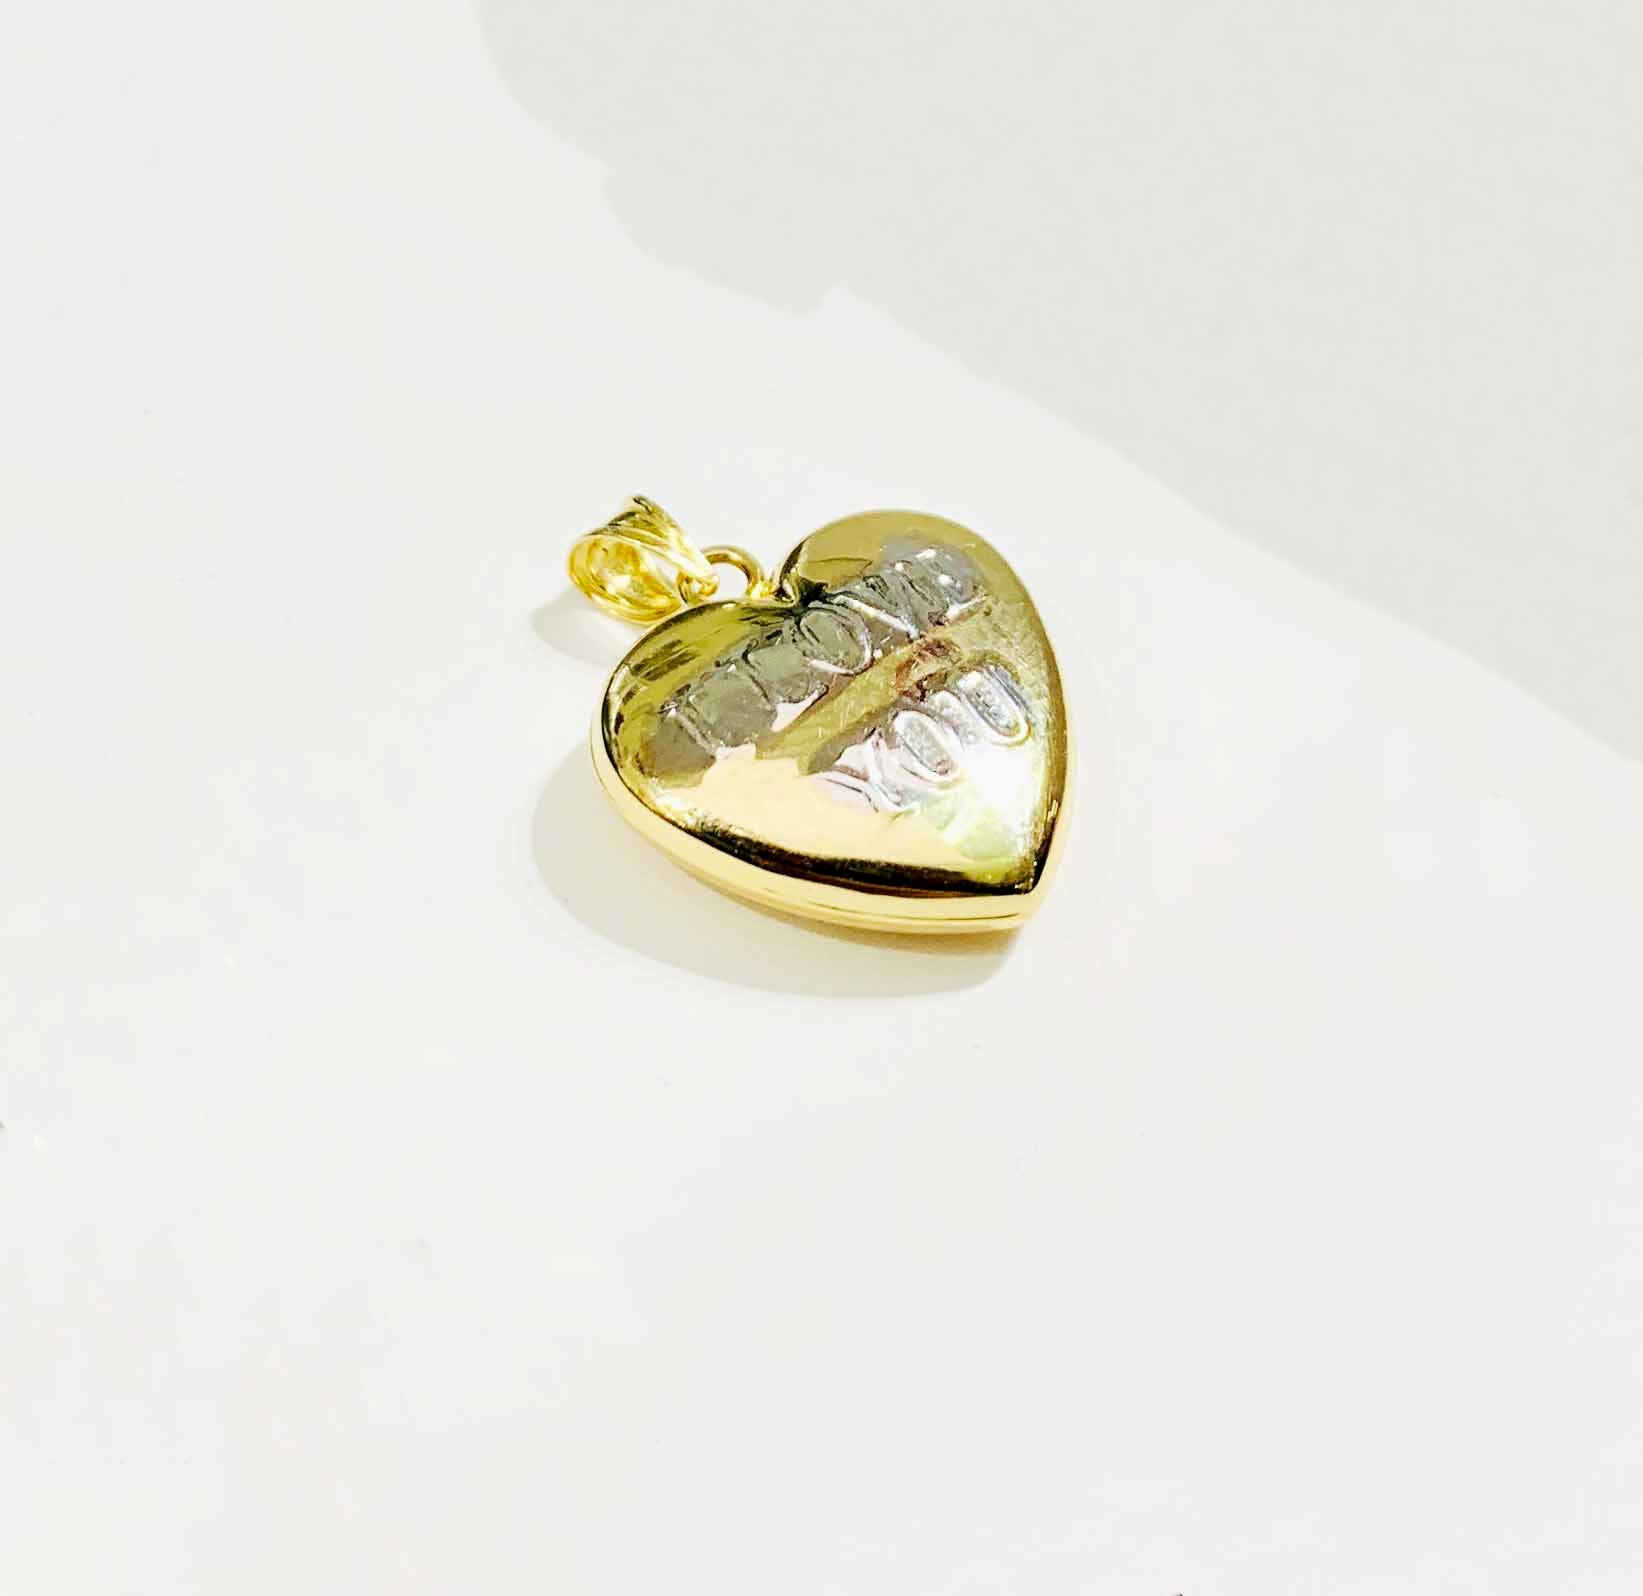 Little Heart pendant (14K).